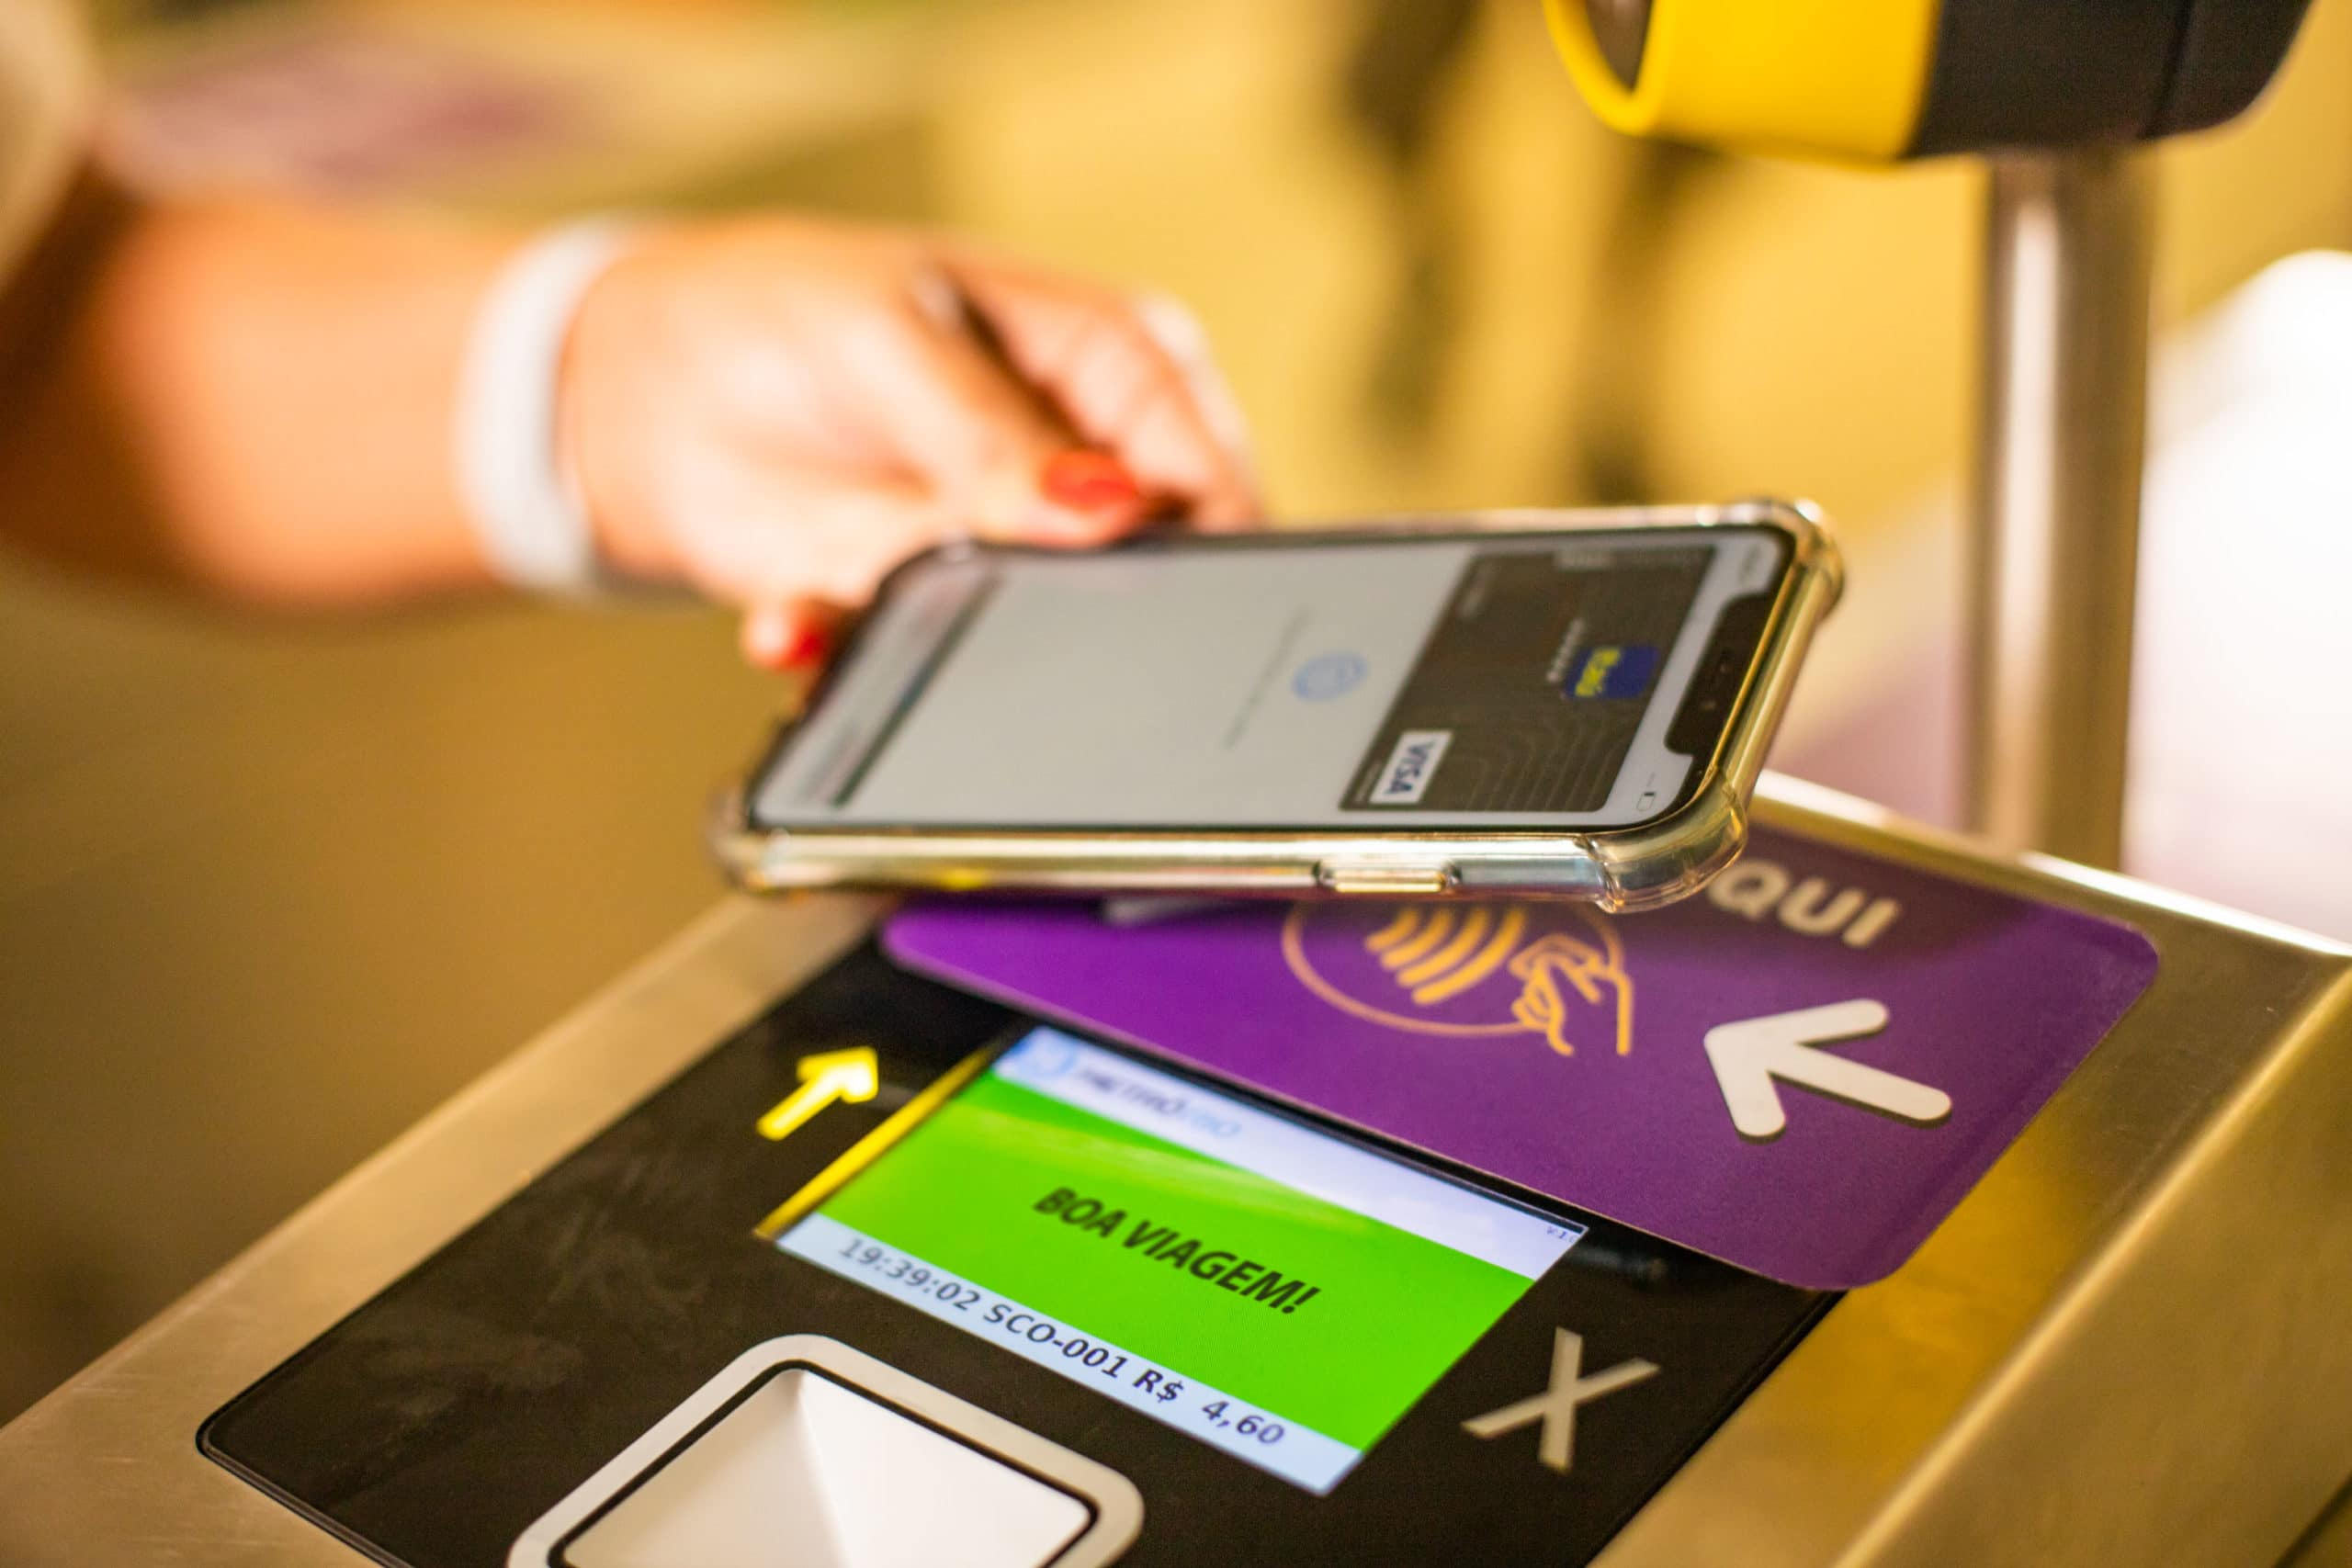 Pagamento por Apple Pay no MetrôRio